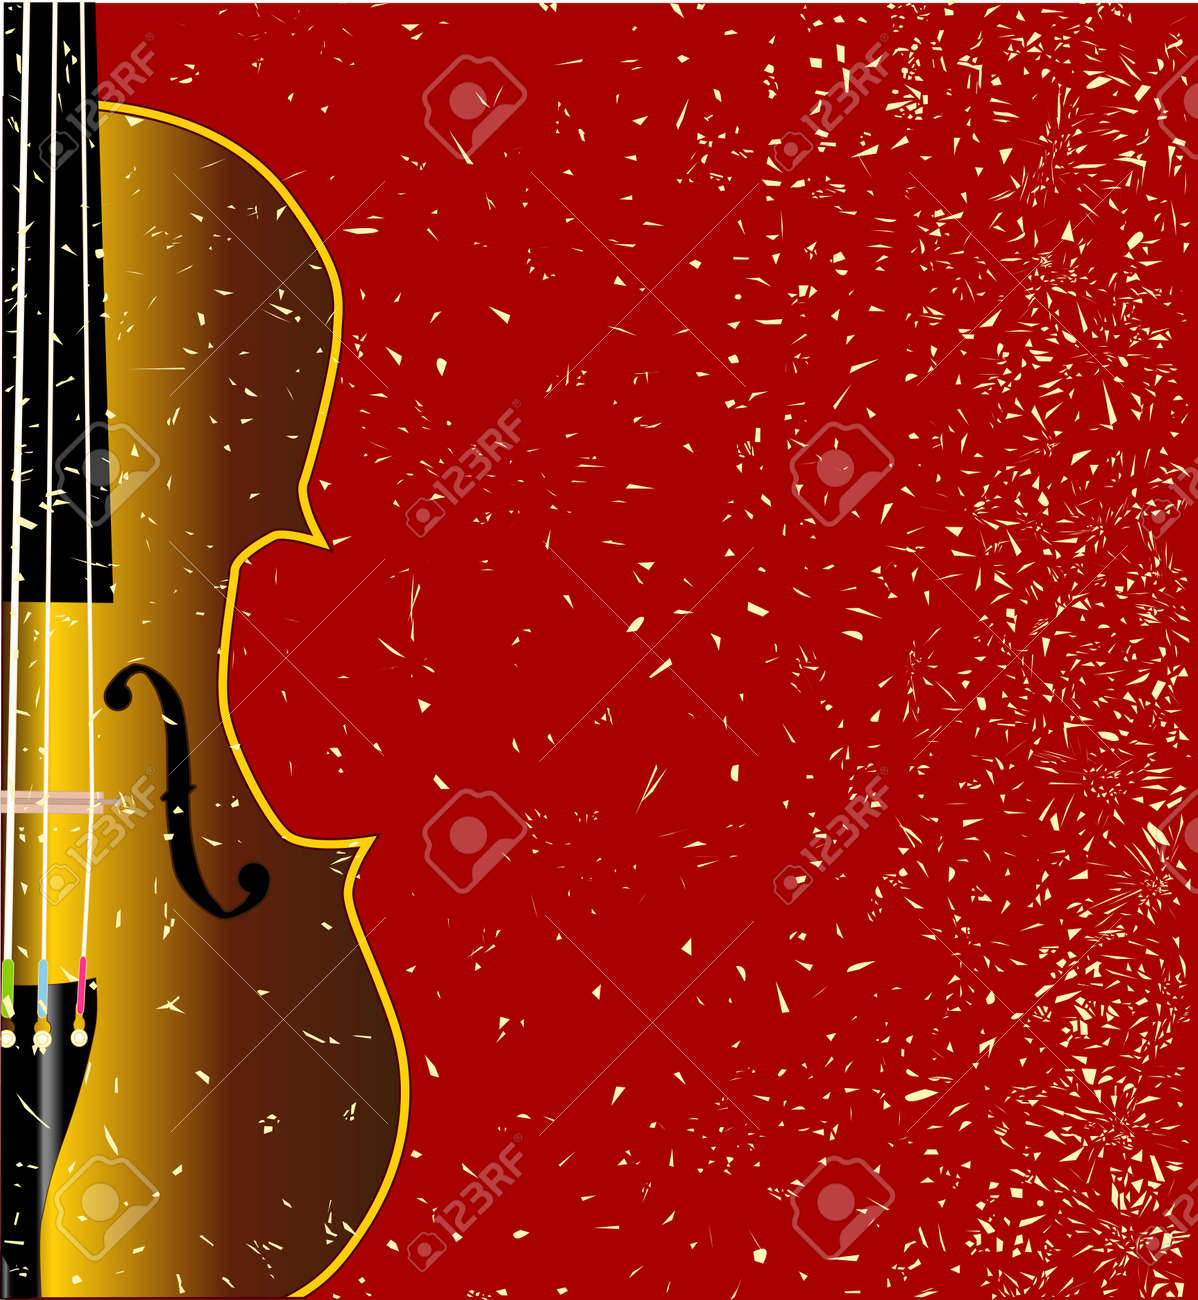 A typical violin close up over a red grunge style background Stock Vector - 25882438